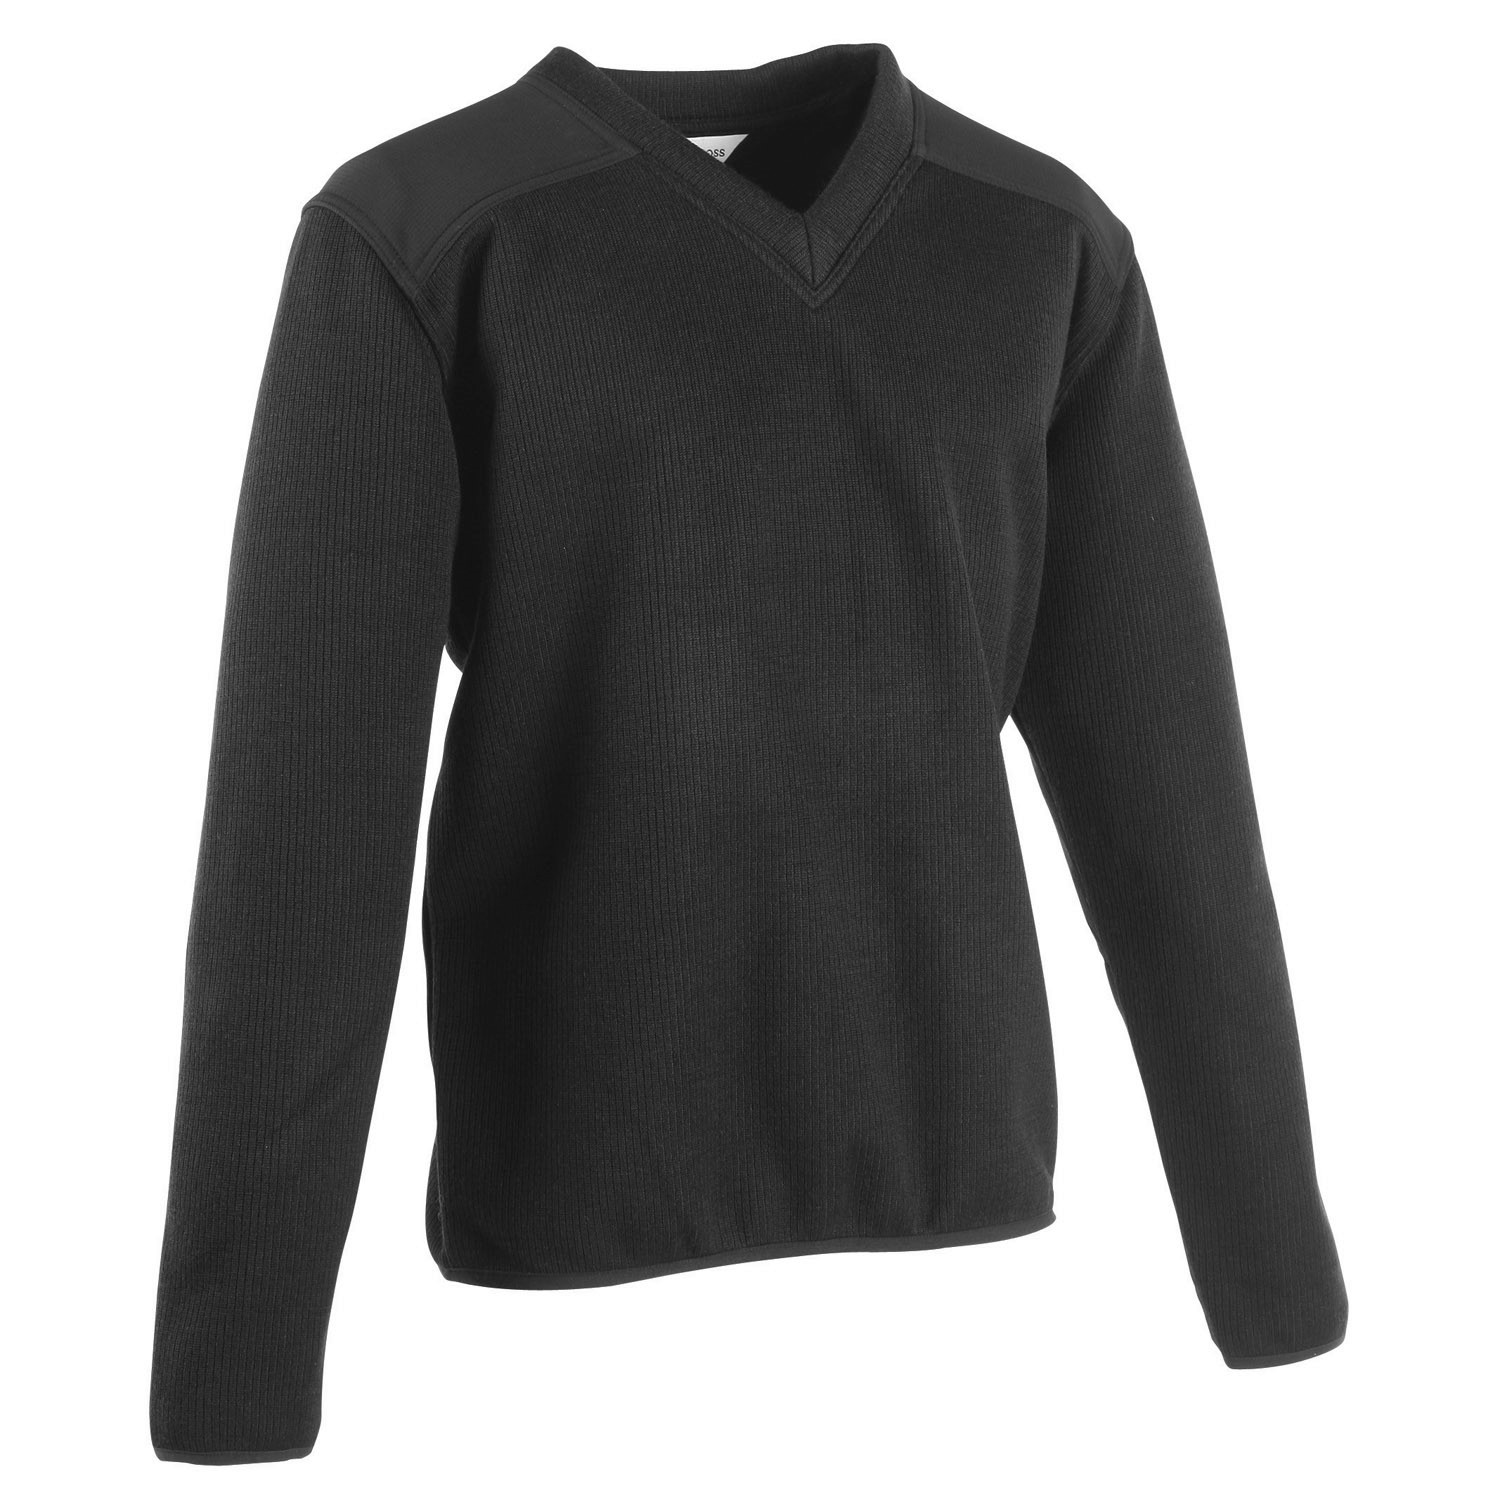 FLEECE LINED V-NECK COMMANDO SWEATER